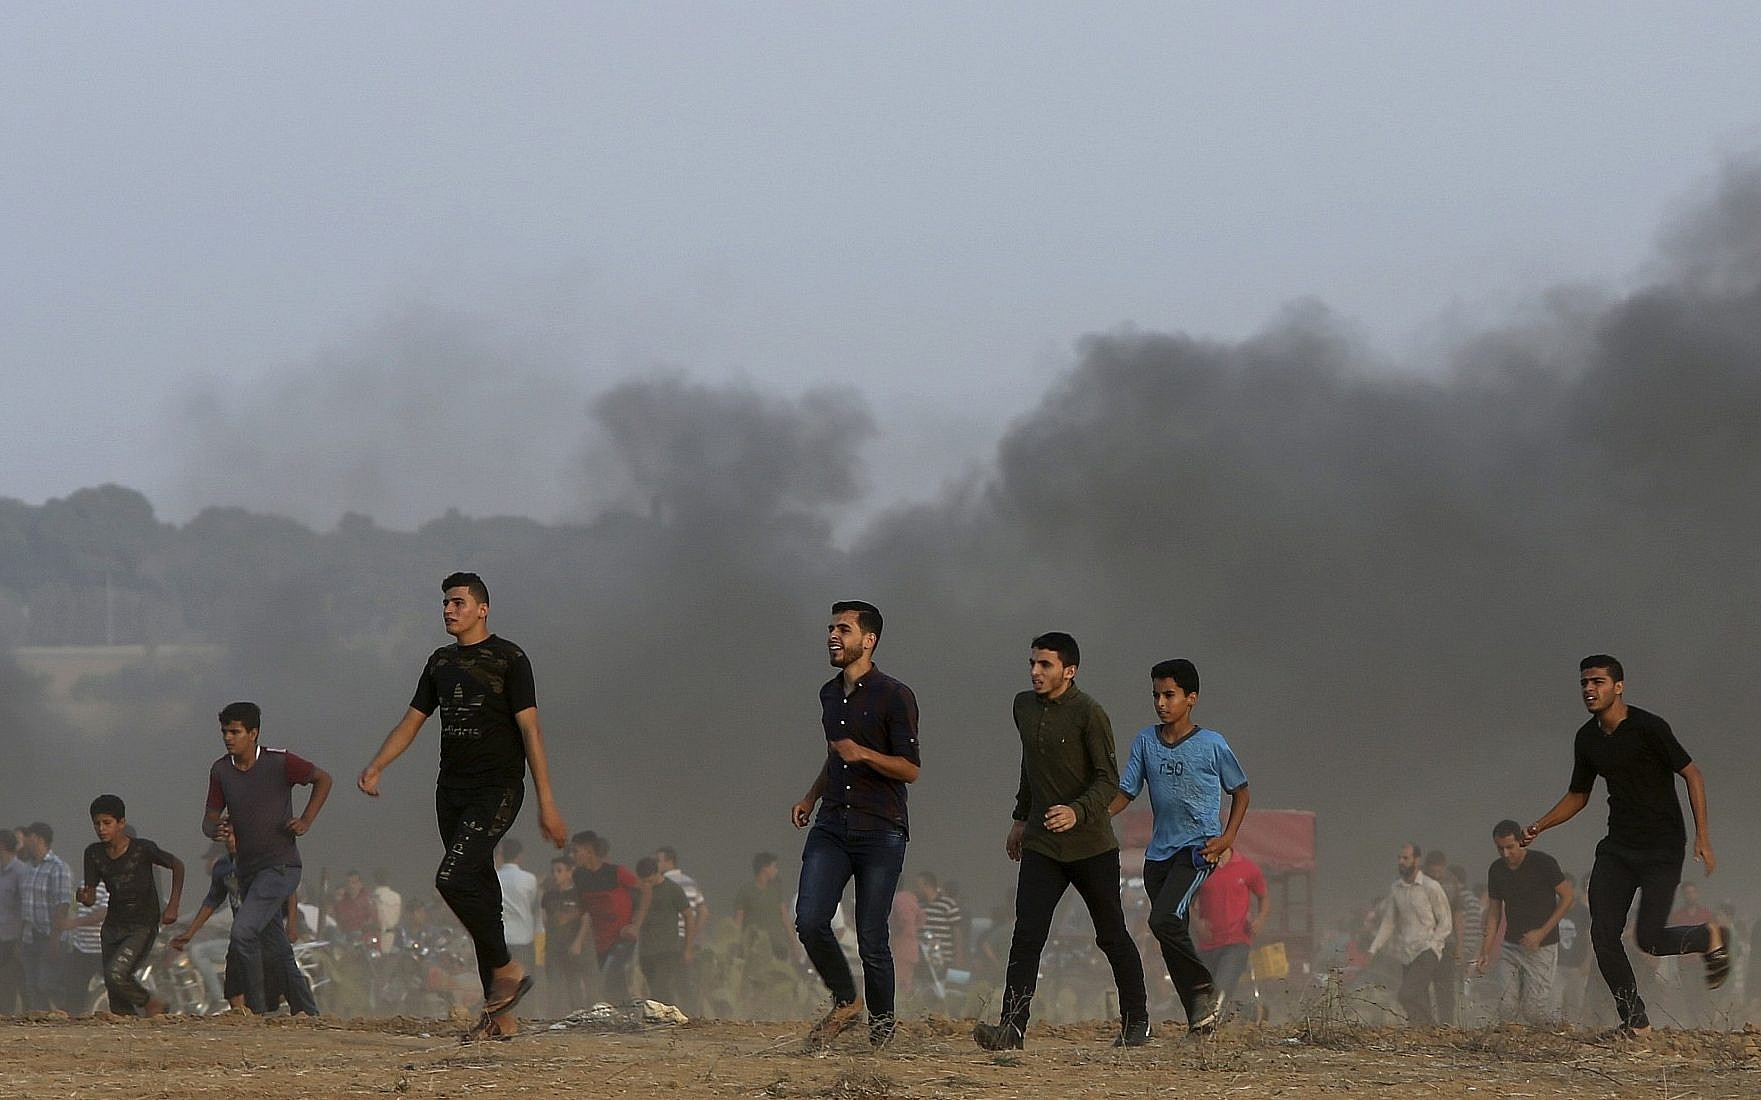 Hamas expected to curb Gaza border riots : Palestinian source